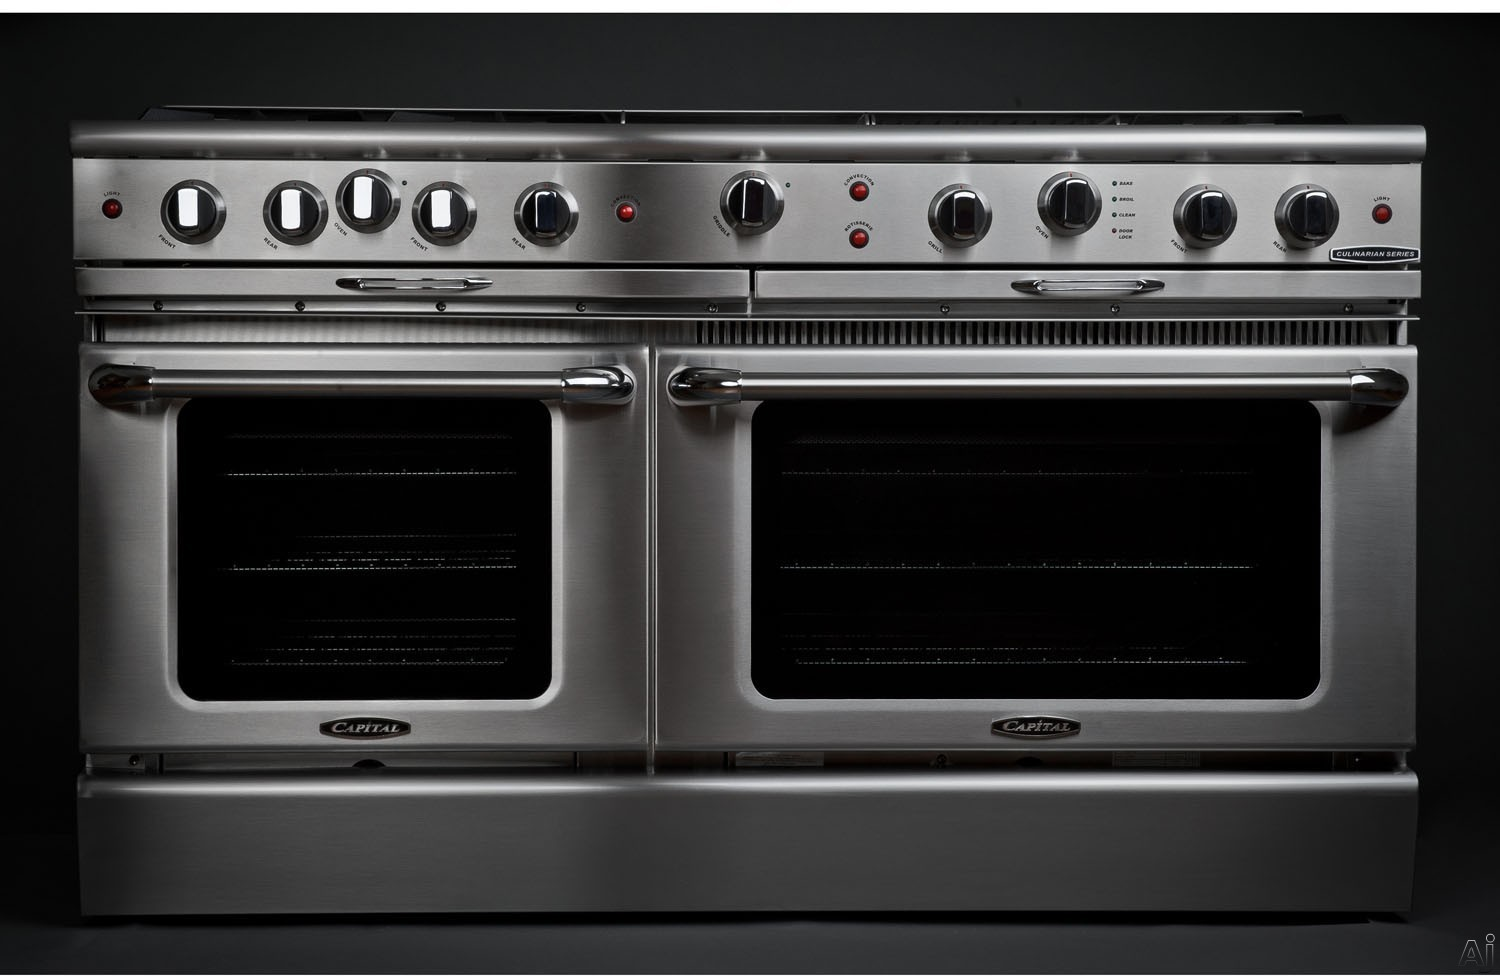 "Capital Culinarian Series CGSR604G4 60 Inch Pro-Style Gas Range with 8 Open Burners, 12"""" Thermo Griddle, 4.6 cu. ft. Convection Oven, 3.1 cu. ft. Secondary Oven, Self Clean Ovens, EZ-Glidesâ""¢ Drip Tray and Moto-Rotisâ""¢ Rotisserie"" CGSR604G4"